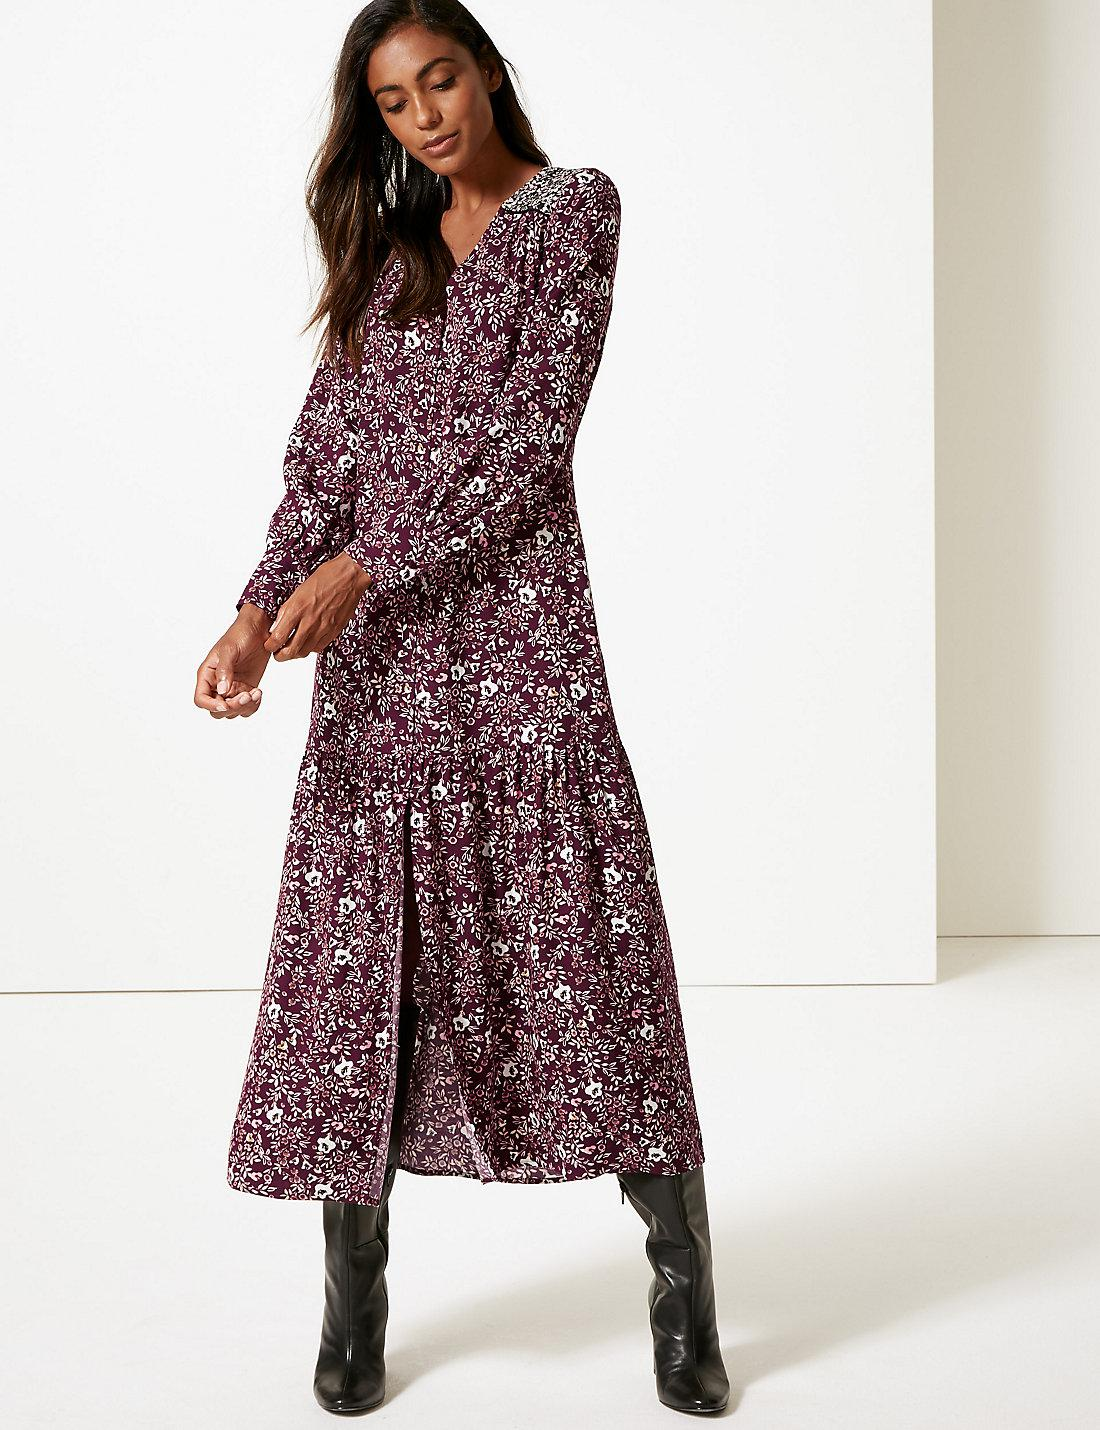 Lyst - Marks   Spencer Floral Print Long Sleeve Shirt Maxi Dress in Purple 859b0ec20